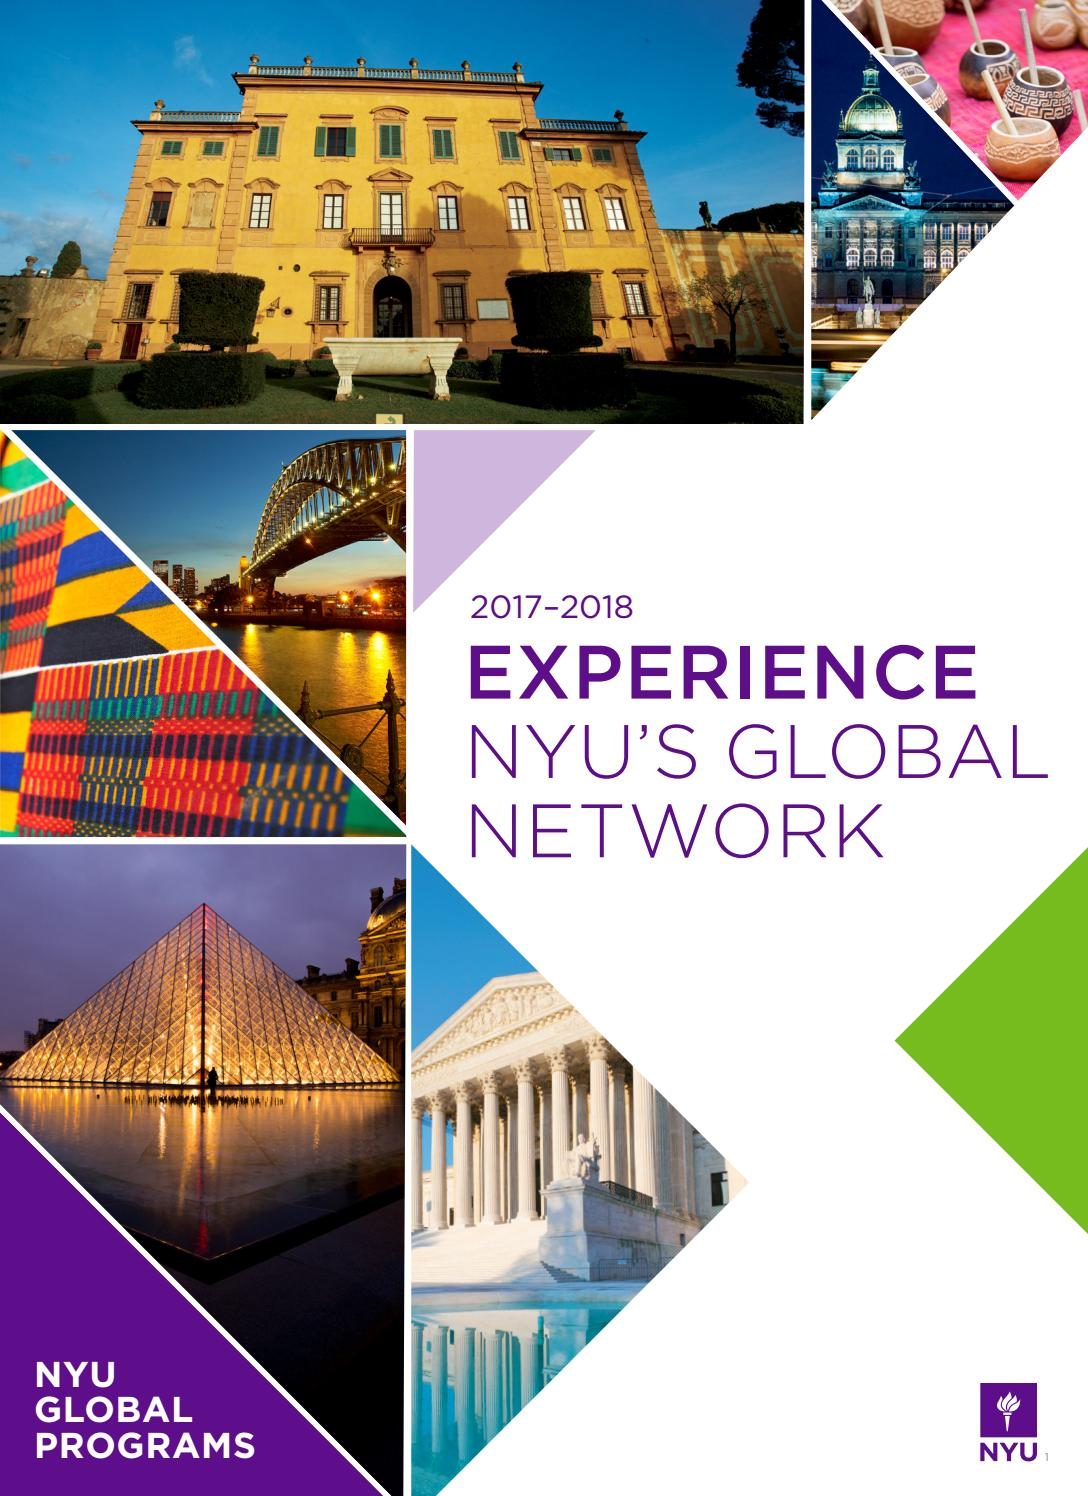 Manly Nyu Shanghai Students By New York University Global Programs Brochure Global Programs Brochure Nyu Shanghai Students By New York Nyu Computer Store Microsoft Office Nyu Computer Store Faculty Di dpreview Nyu Computer Store